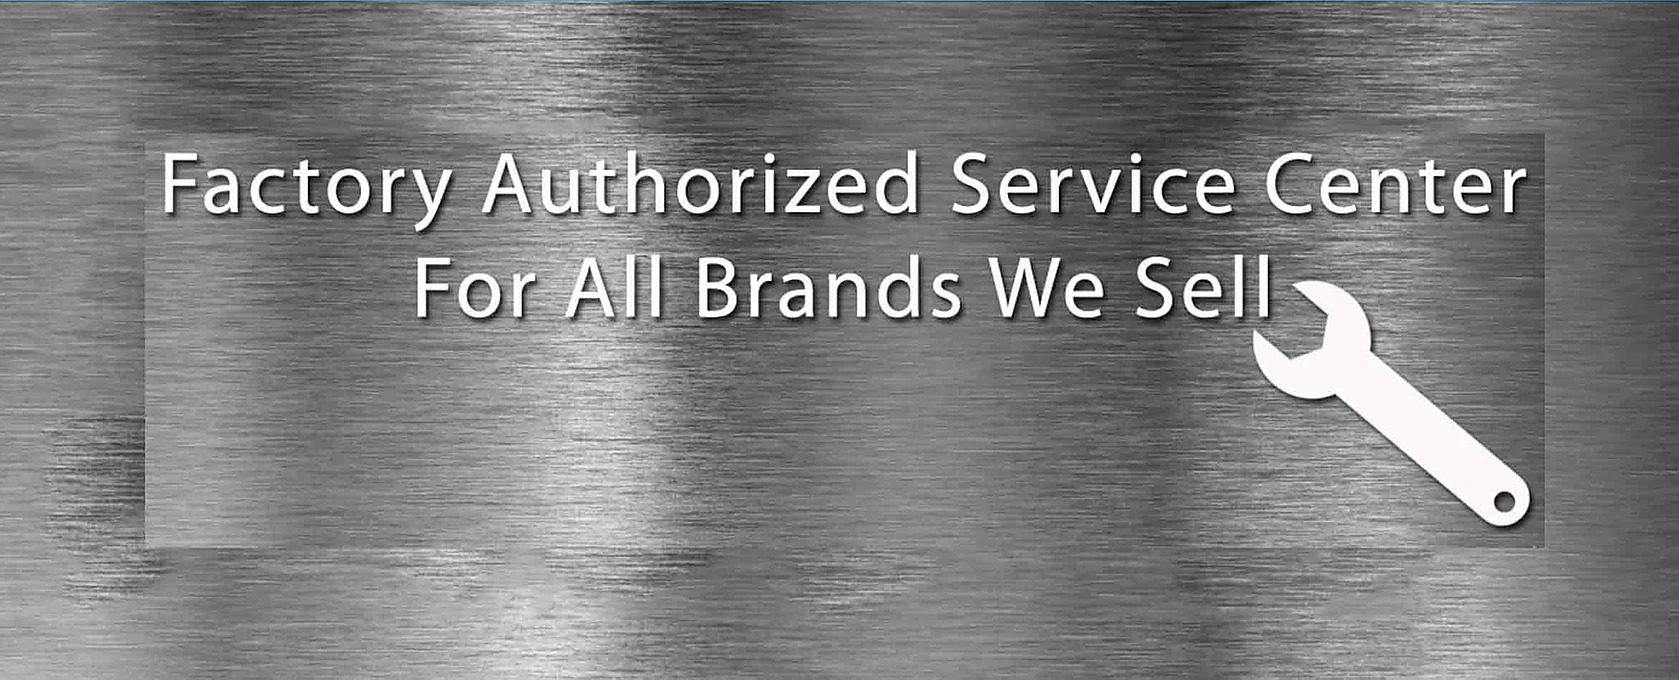 Factory Authorized Appliance Sales and Repair